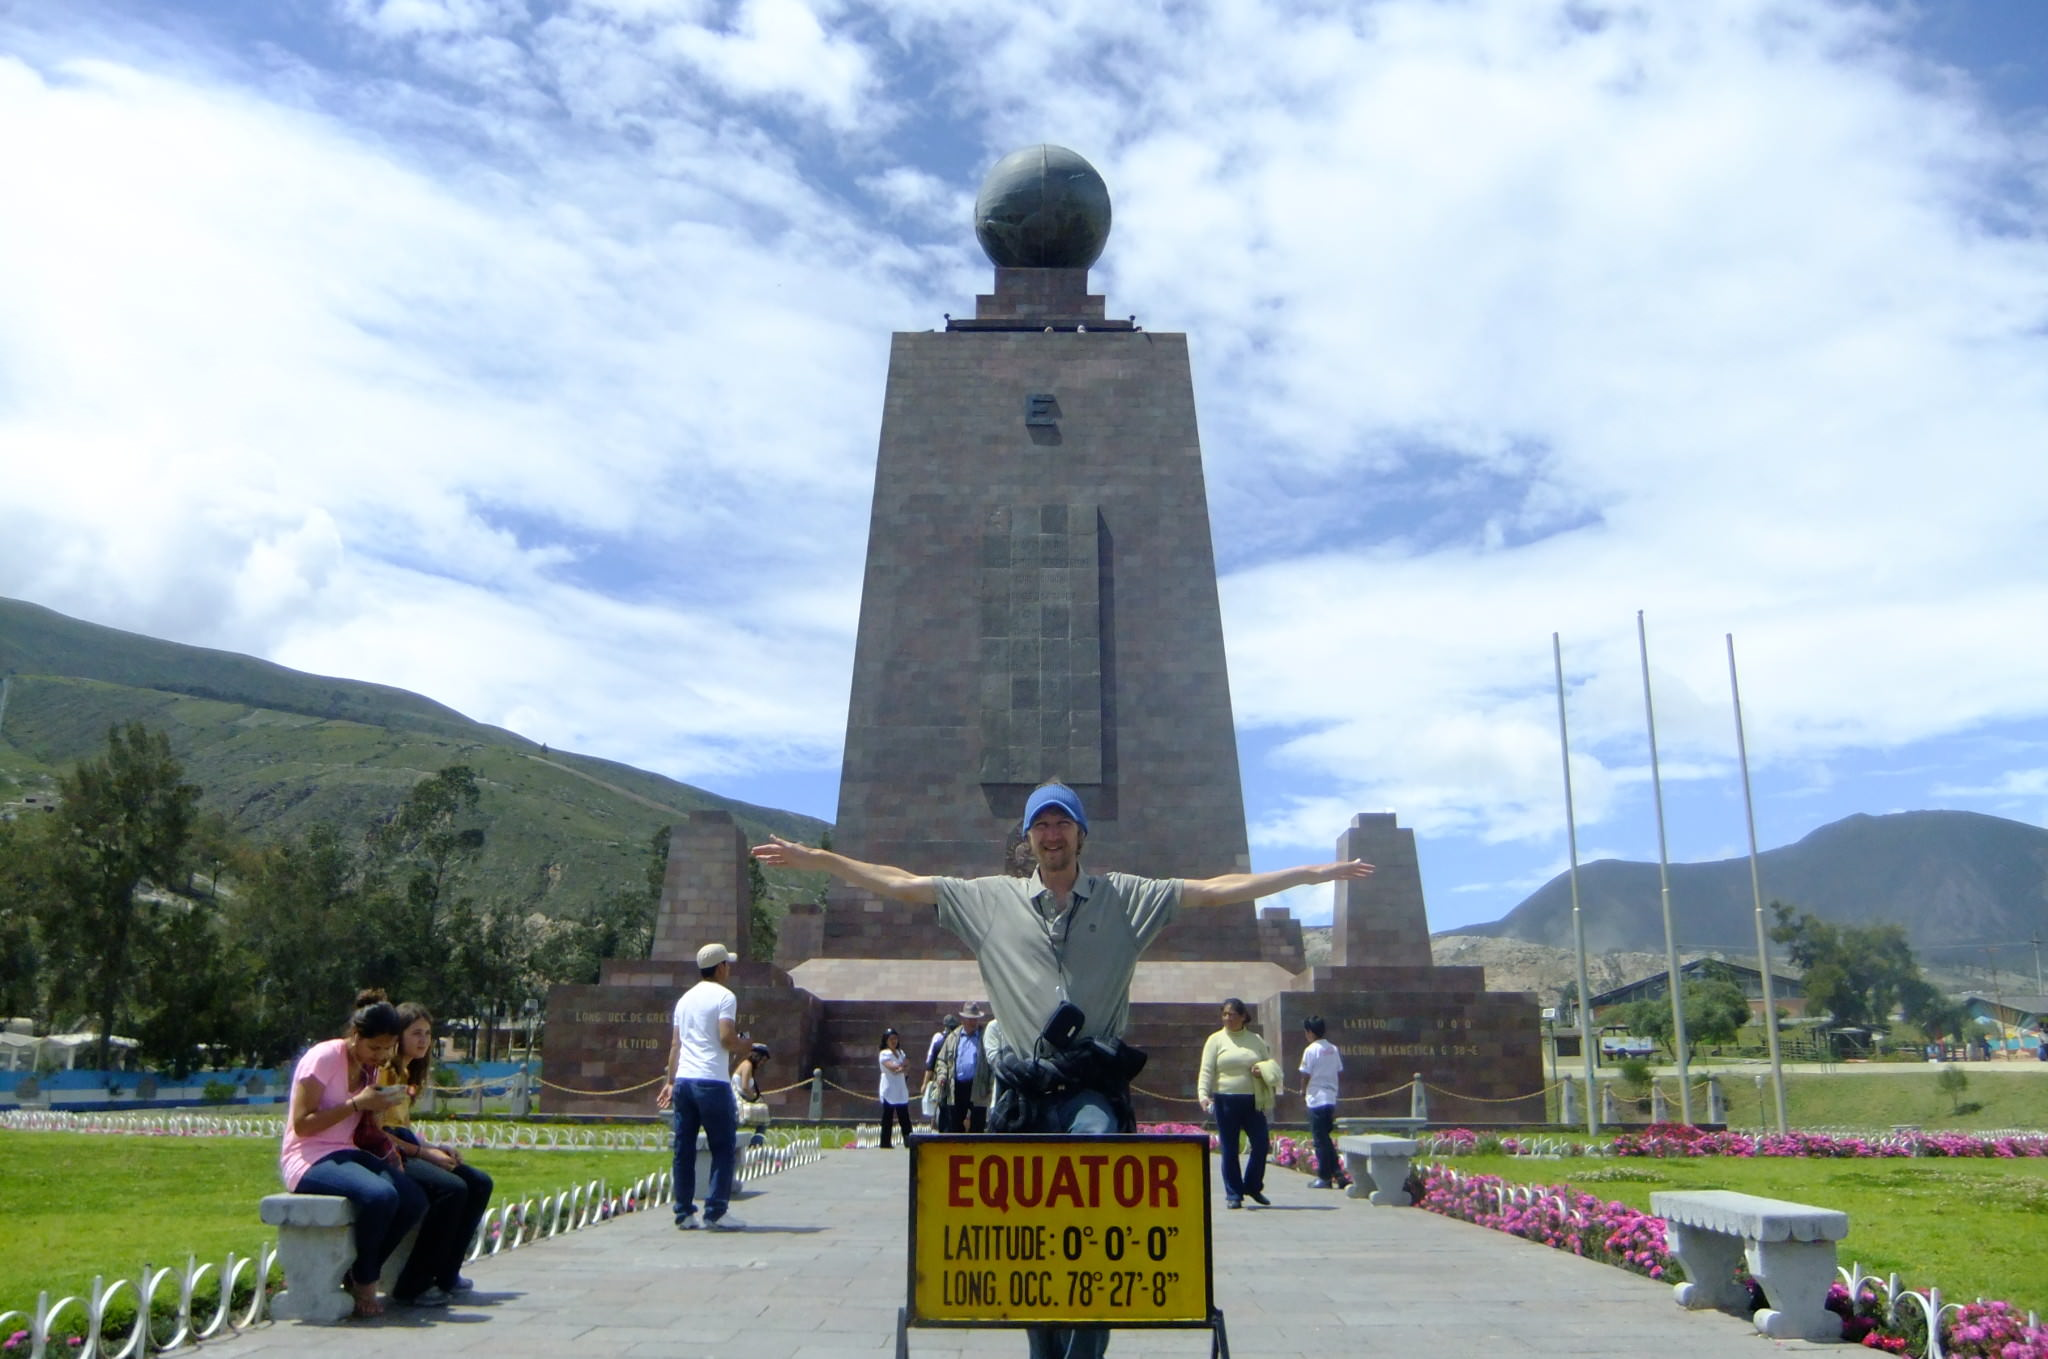 Jonny Blair stands on the equator